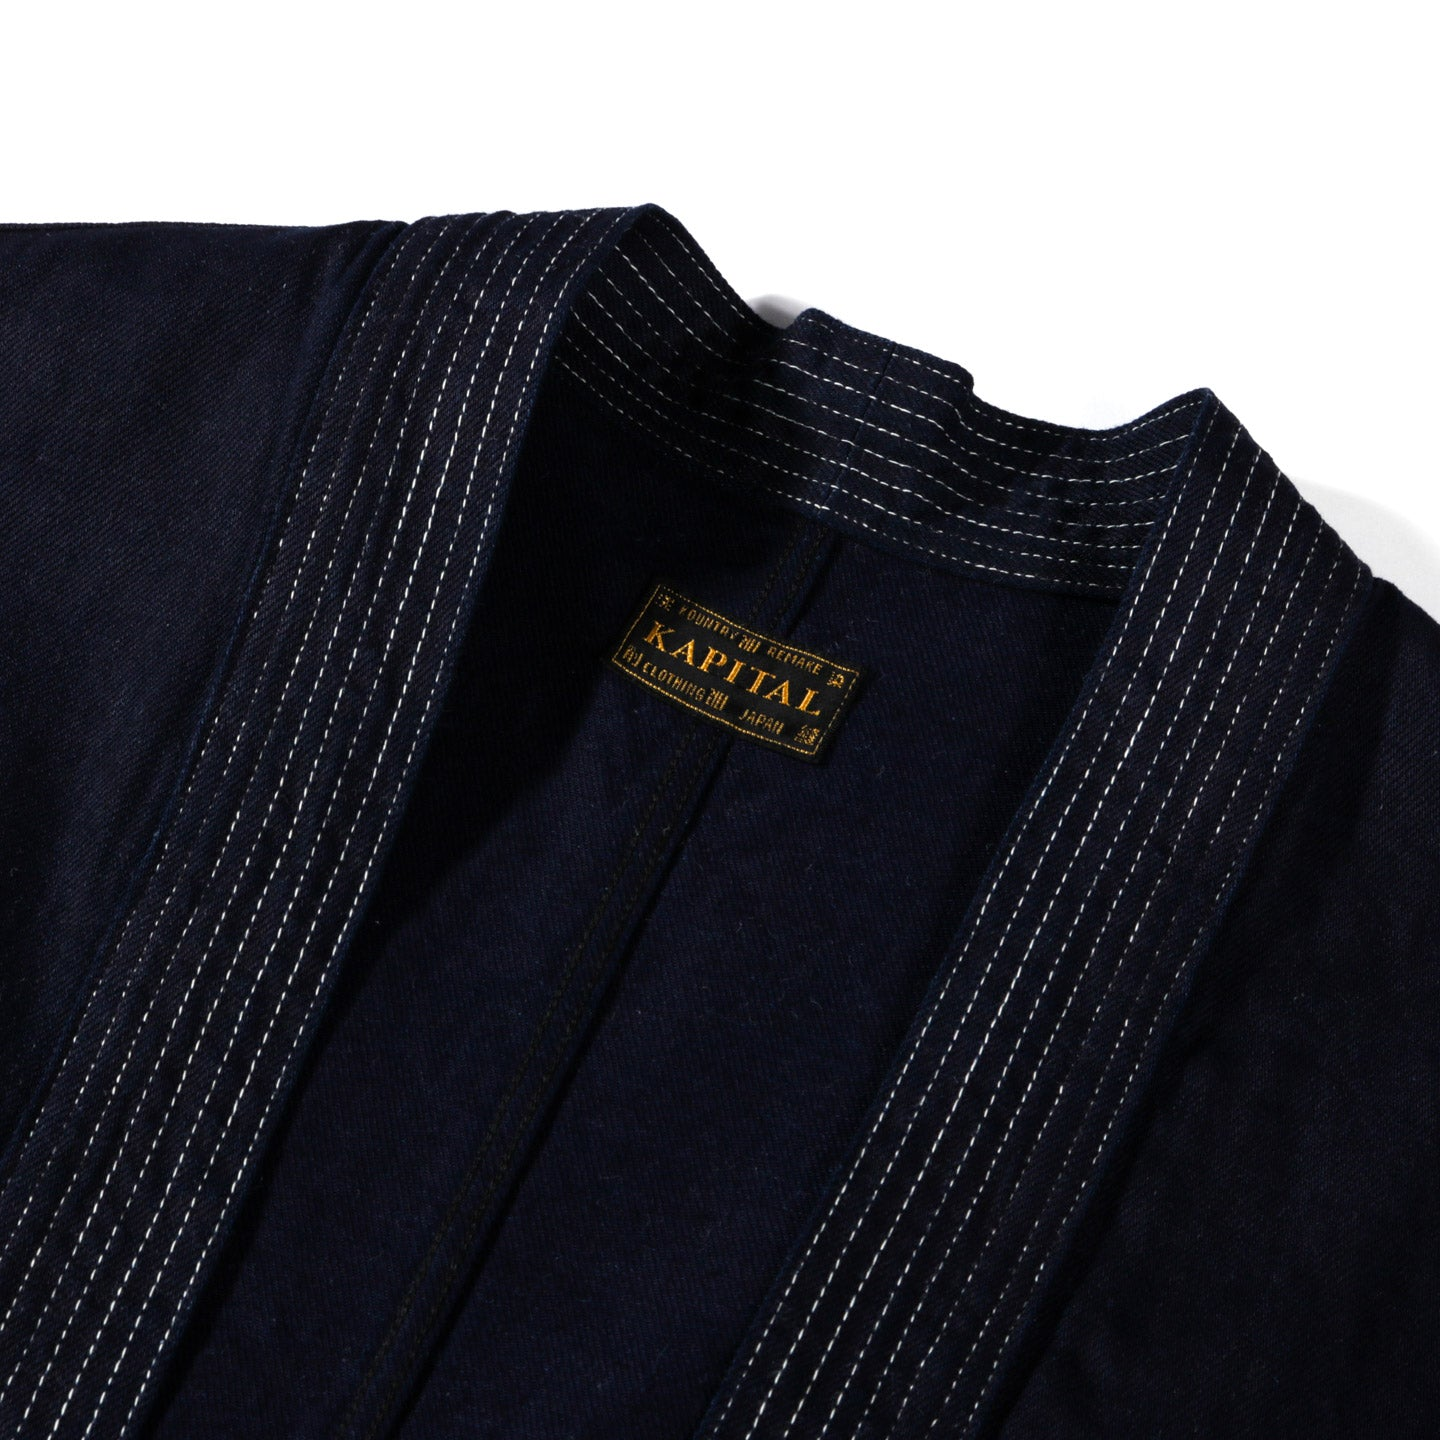 KAPITAL 8OZ DENIM KAKASHI SHIRT FUROSHIKI EMBROIDERY INDIGO